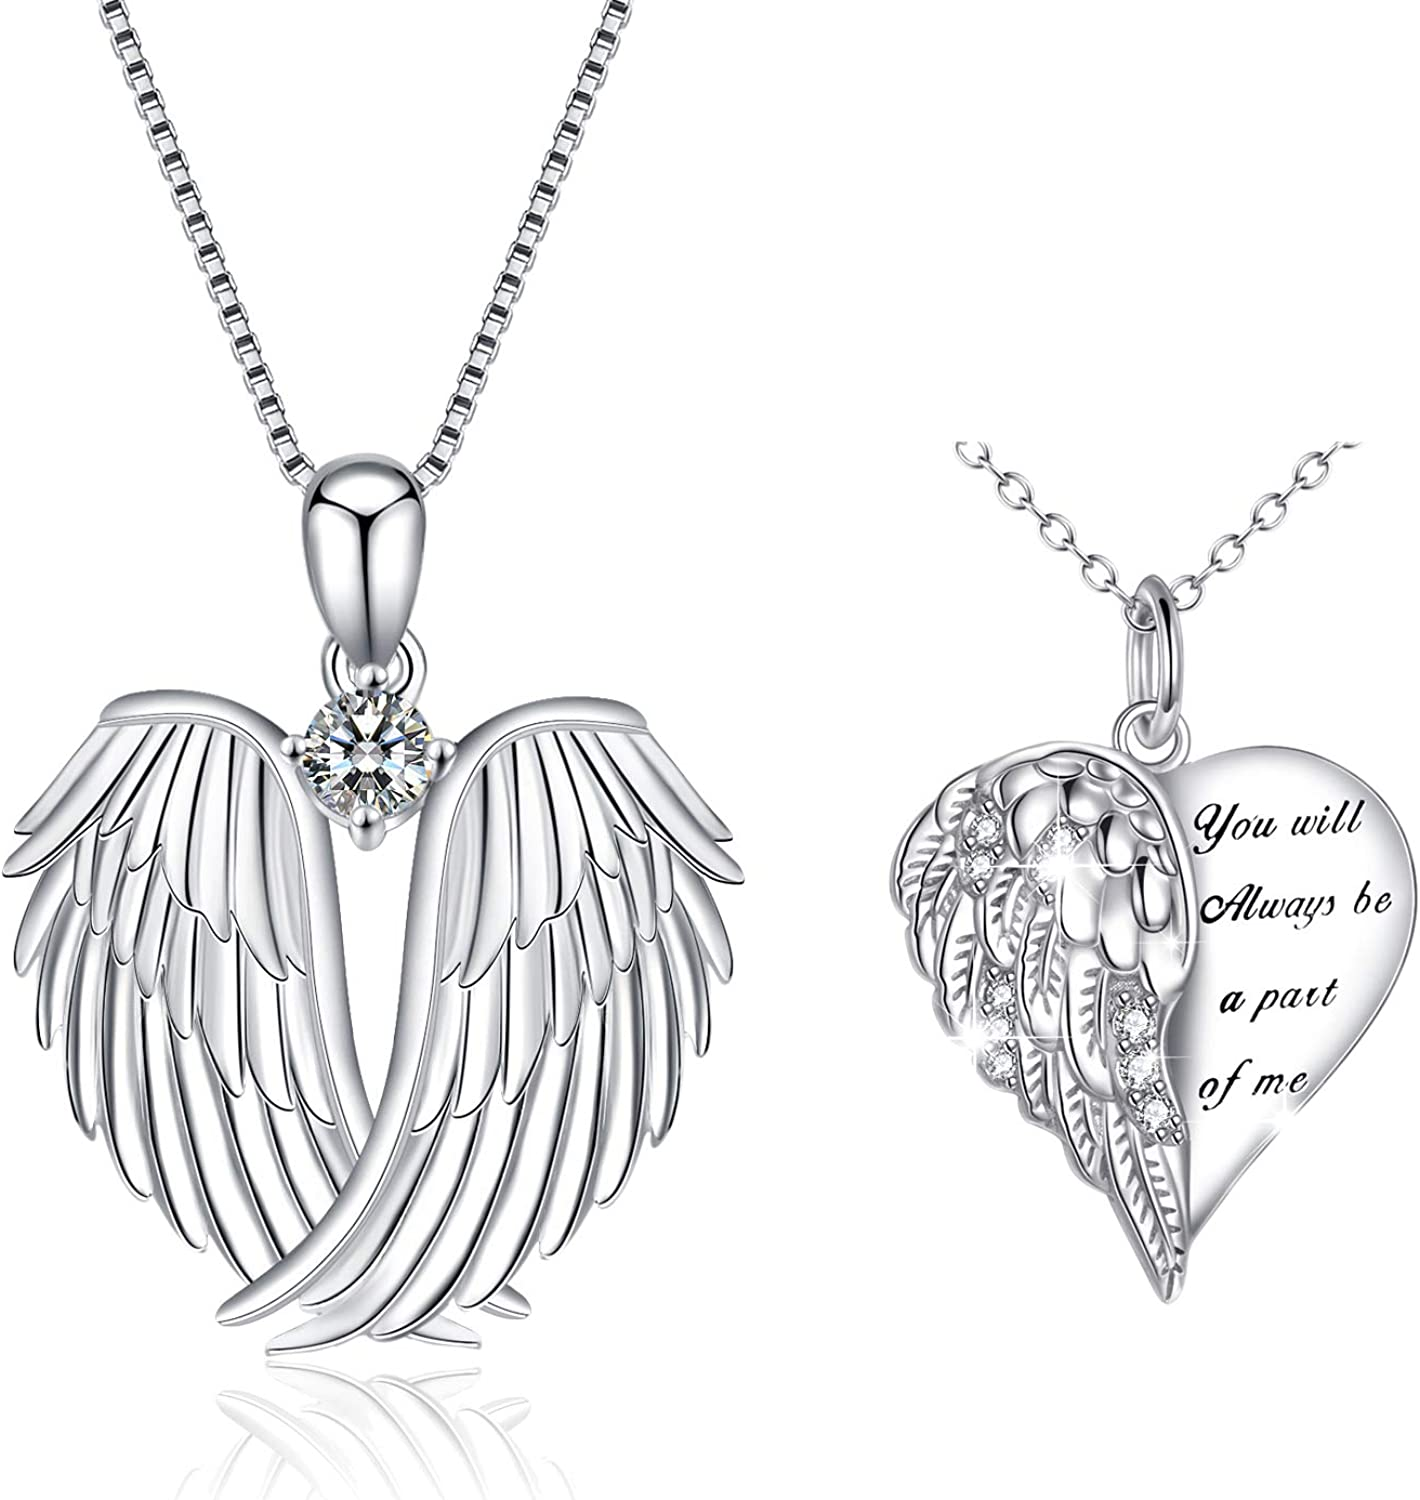 brass wings silver wings necklace christmas gift silver guitar WGN11201842 musician gift sterling guitar pendant with wings